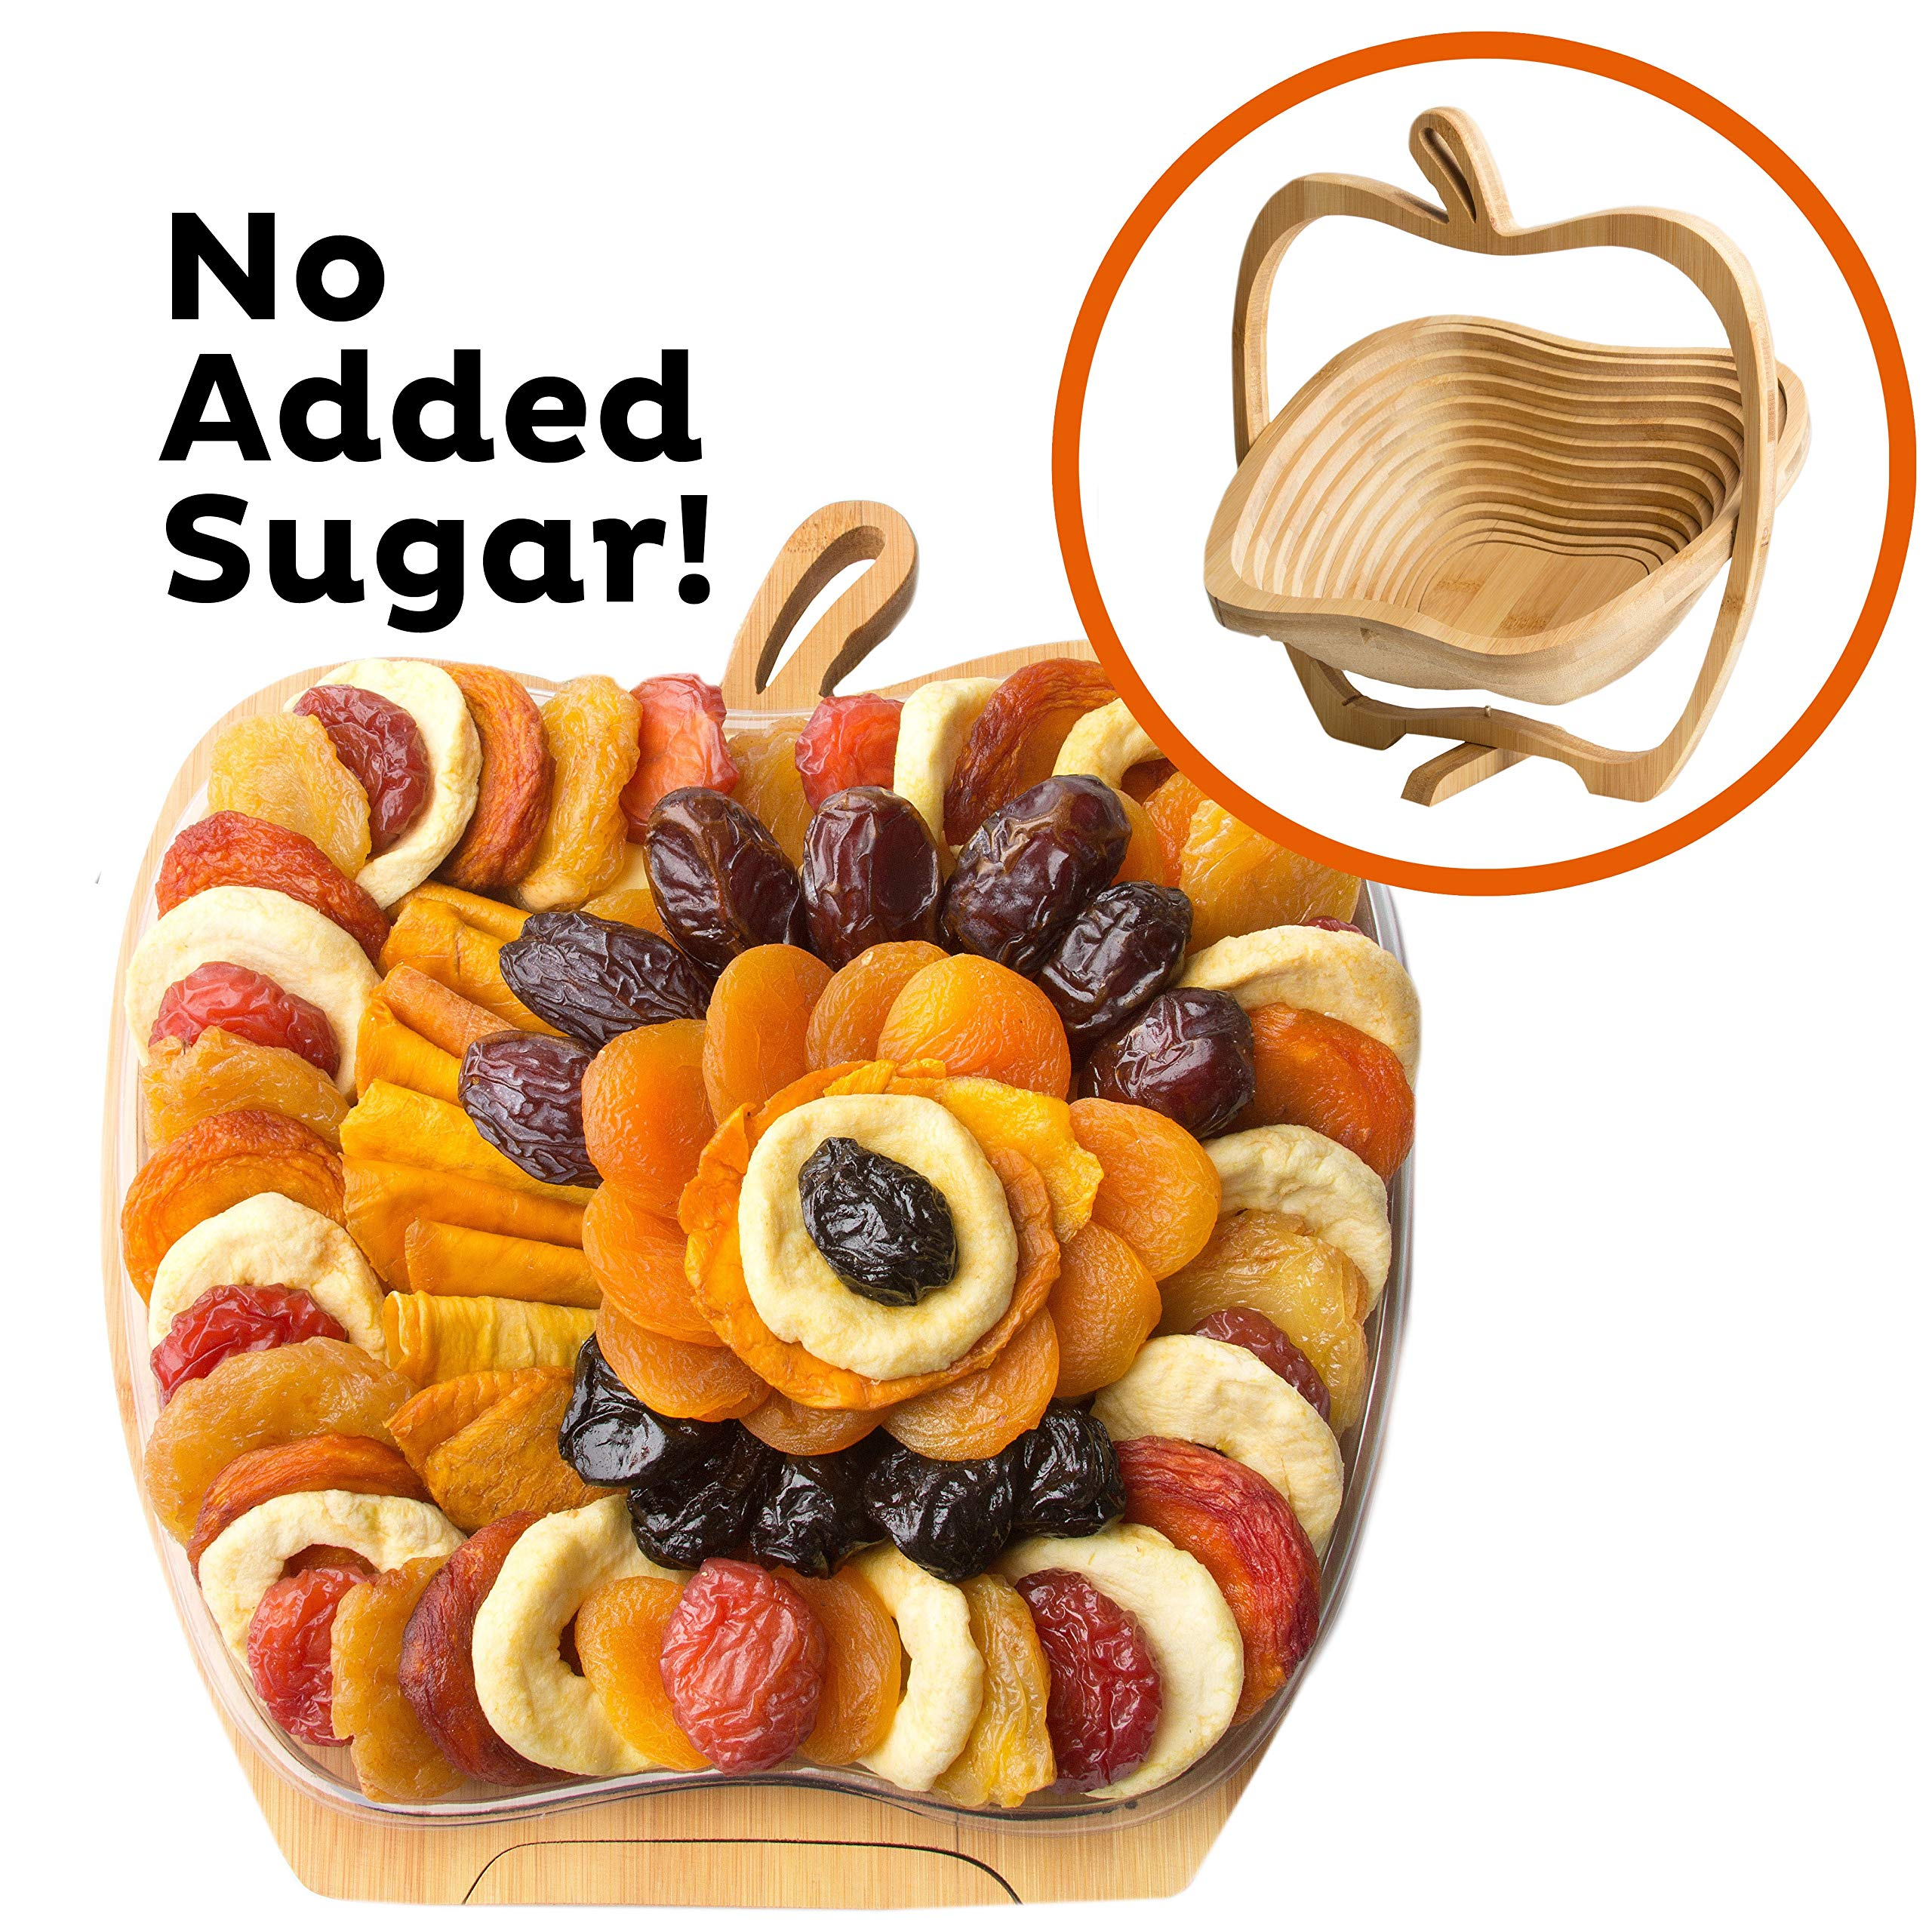 Oh! Nuts Dried Fruit Gift Basket | Healthy Assorted Gourmet Food Snacks in Folding Wooden Trivet-Tray Fruit Bowl | Fresh Natural Ingredients, No Sugar Added, Vegan Safe, Kosher, Nondairy & Gluten Free